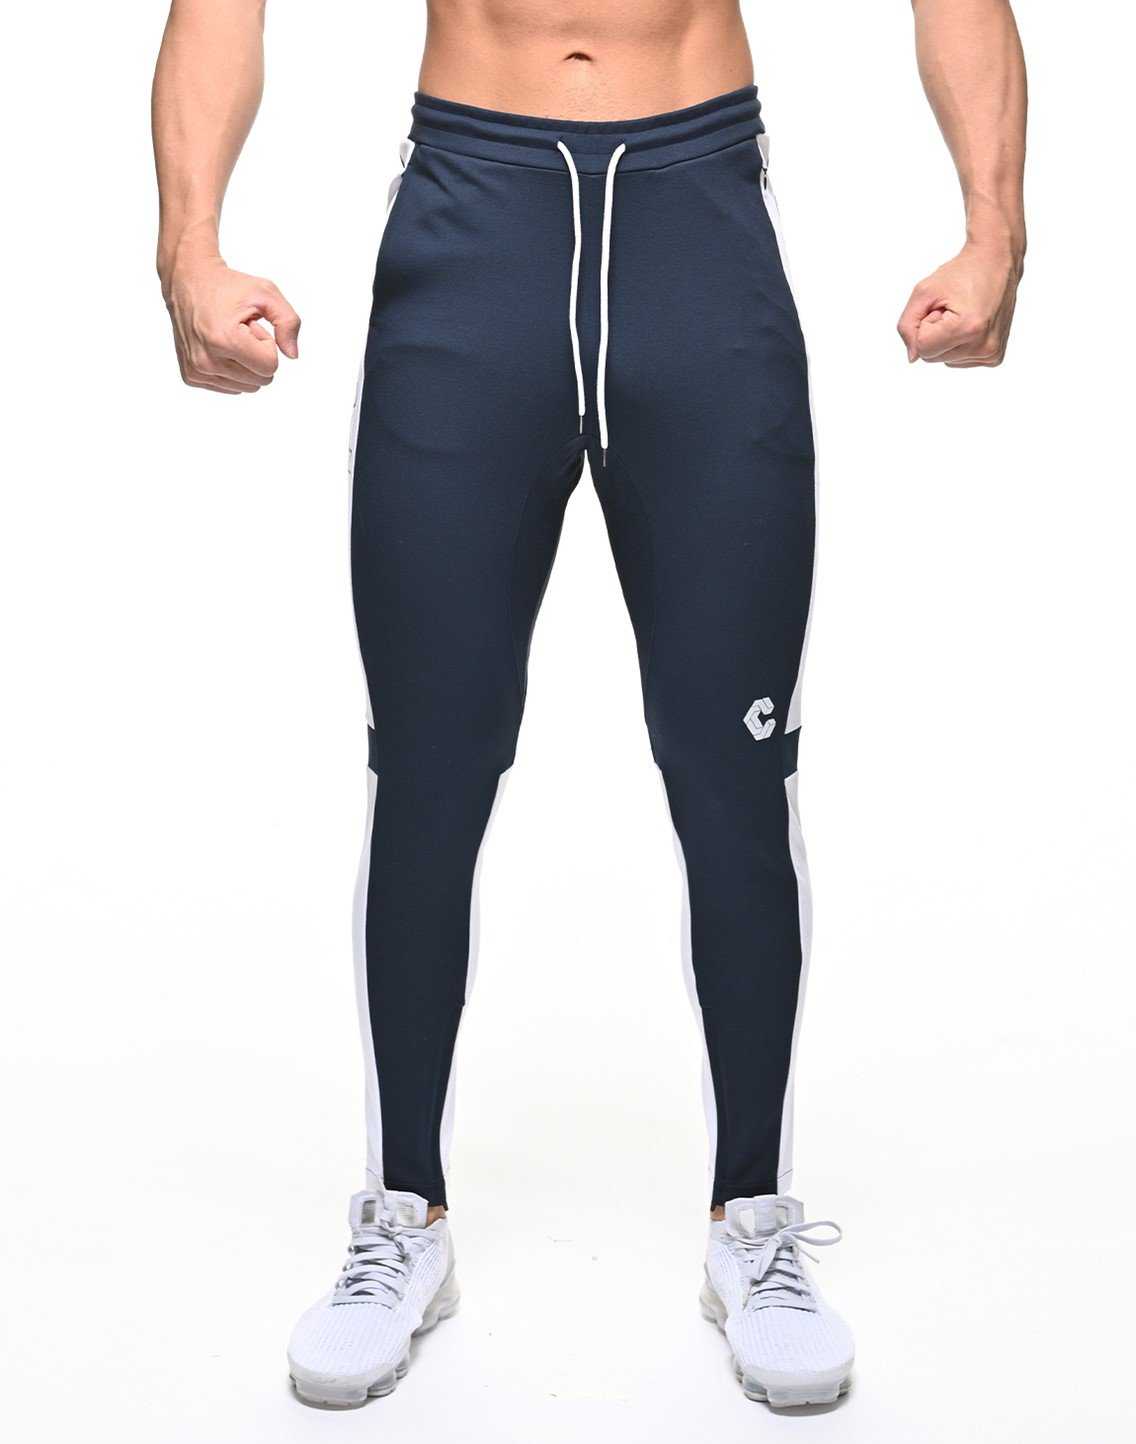 <img class='new_mark_img1' src='https://img.shop-pro.jp/img/new/icons1.gif' style='border:none;display:inline;margin:0px;padding:0px;width:auto;' />CRONOS NEW THICK LINE PANT 【NAVY×WHITE】